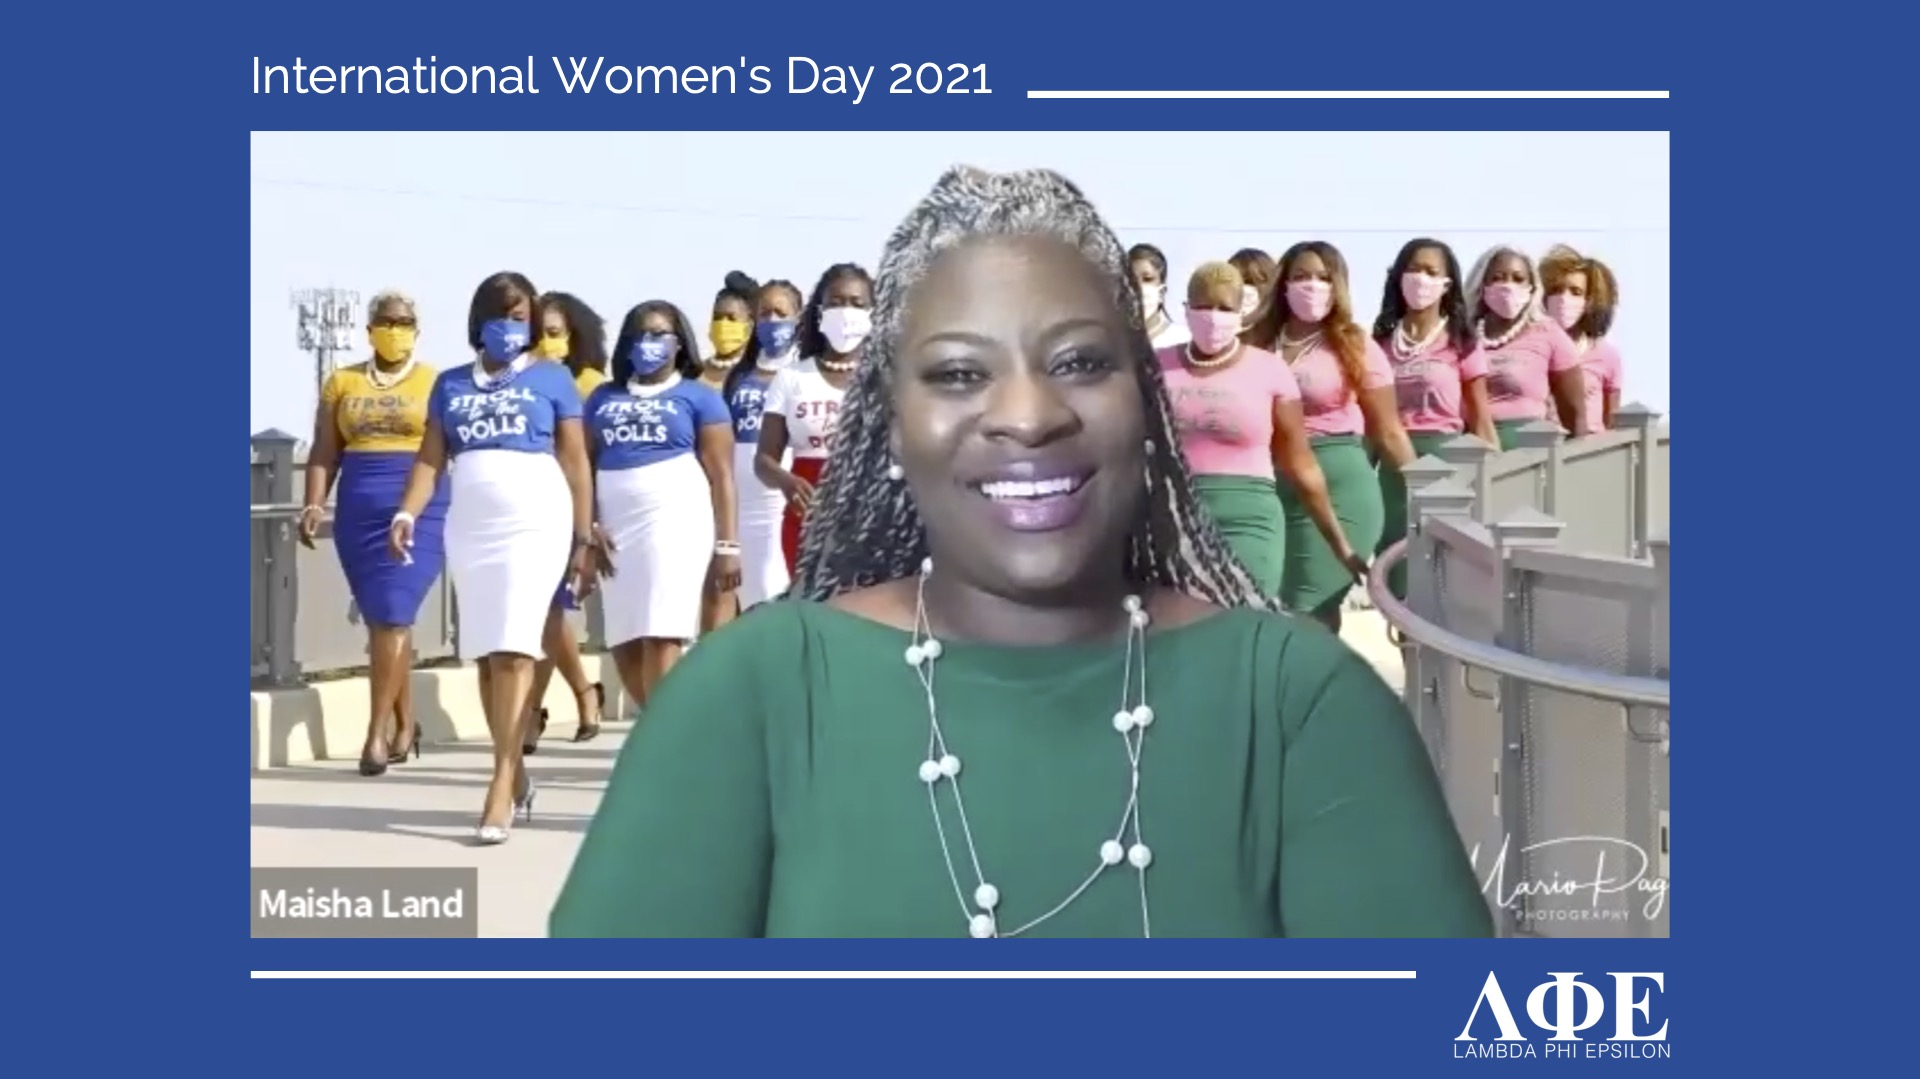 Maisha Land speaks with LFE for International Women's Day